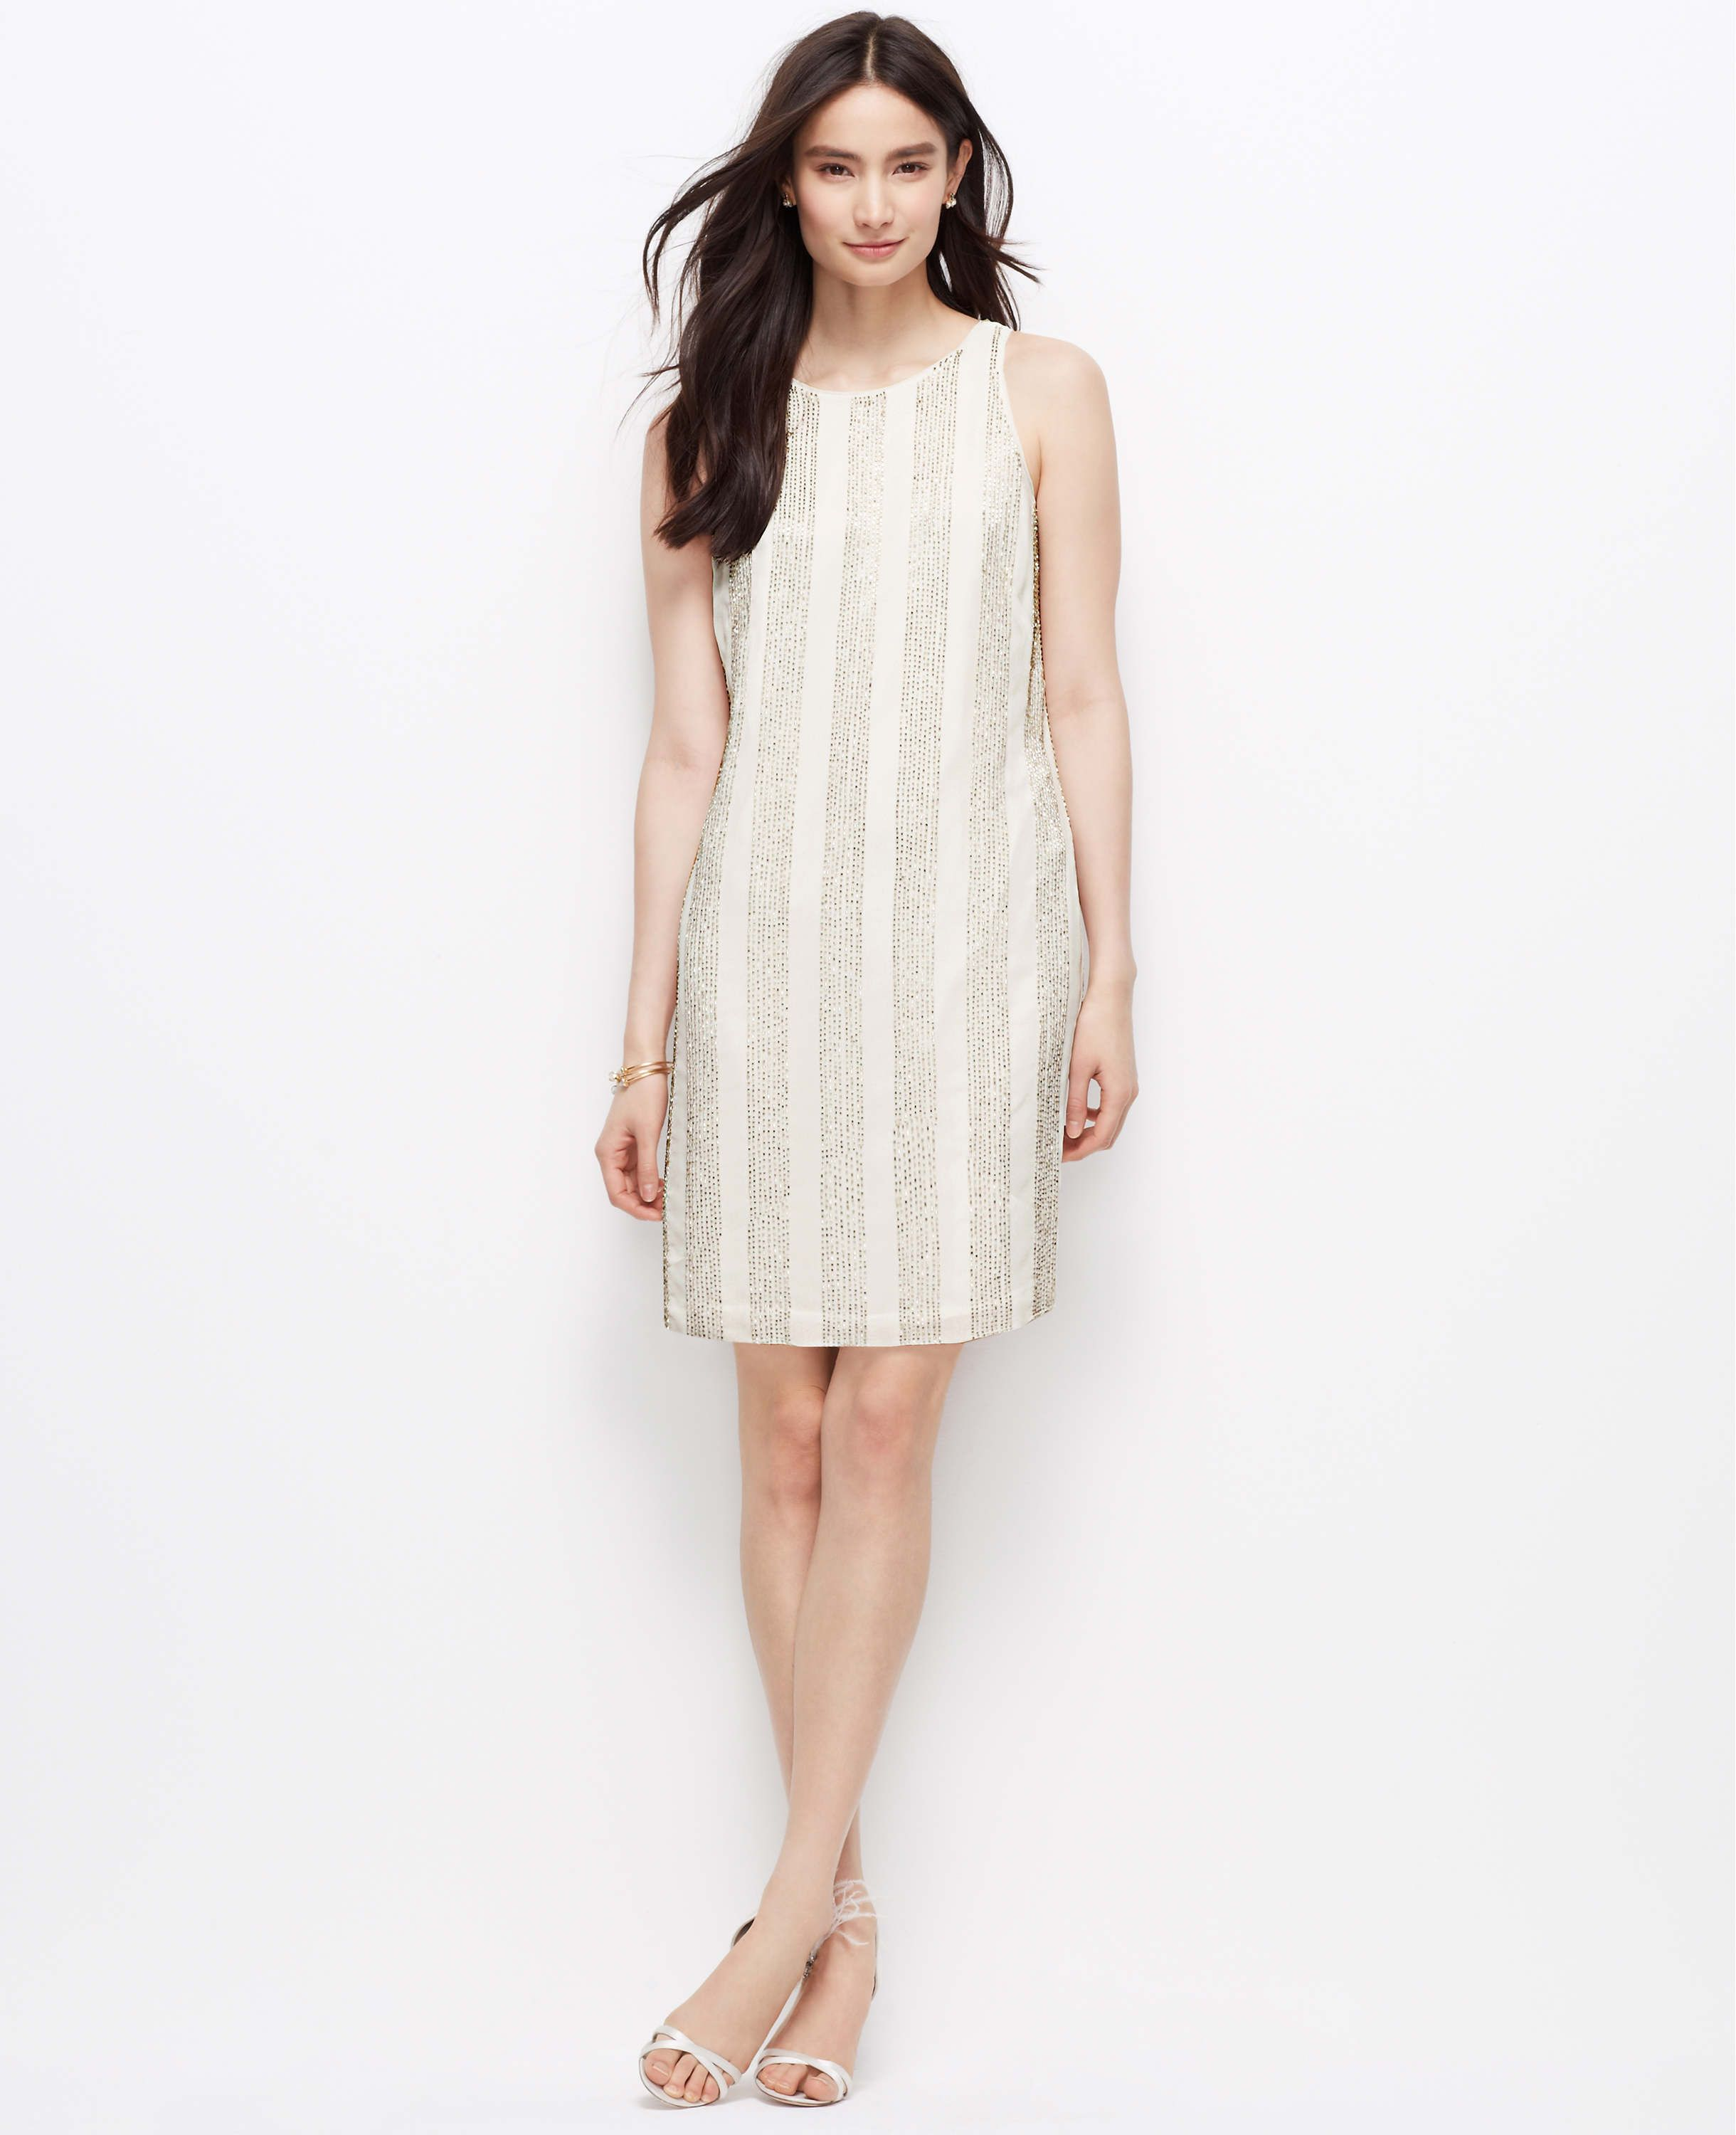 Beaded stripe dress ann taylor e v e n t a t t i r e pinterest beaded stripe dress ann taylor ombrellifo Images